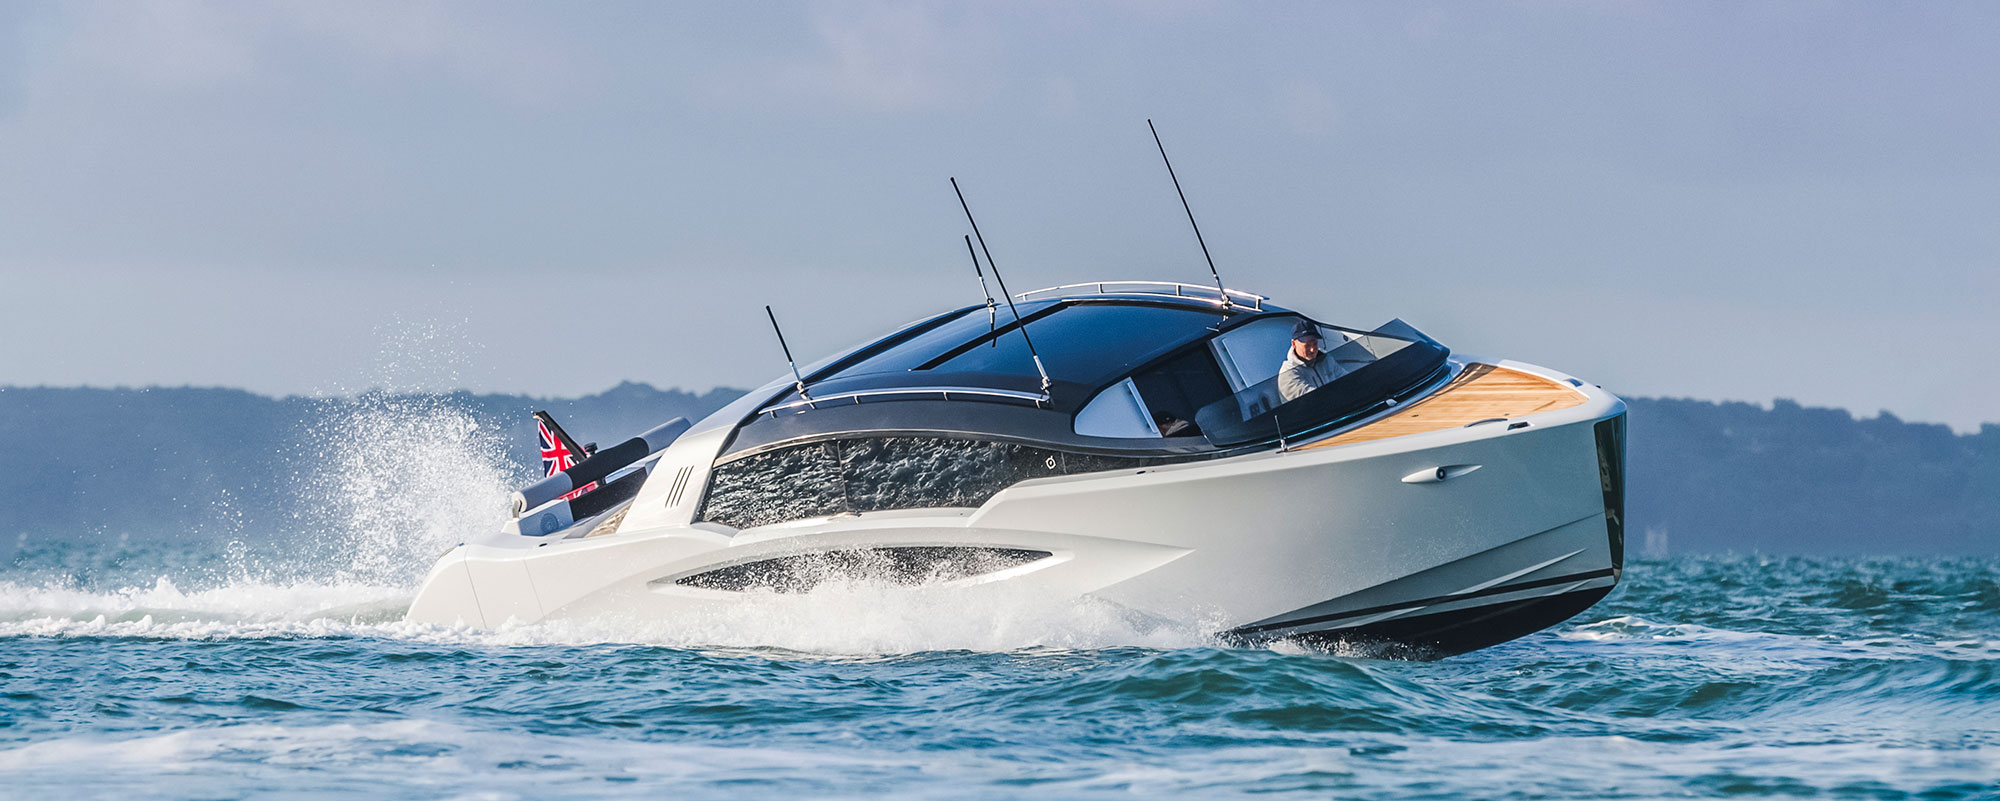 Limousine Tender in Hampshire